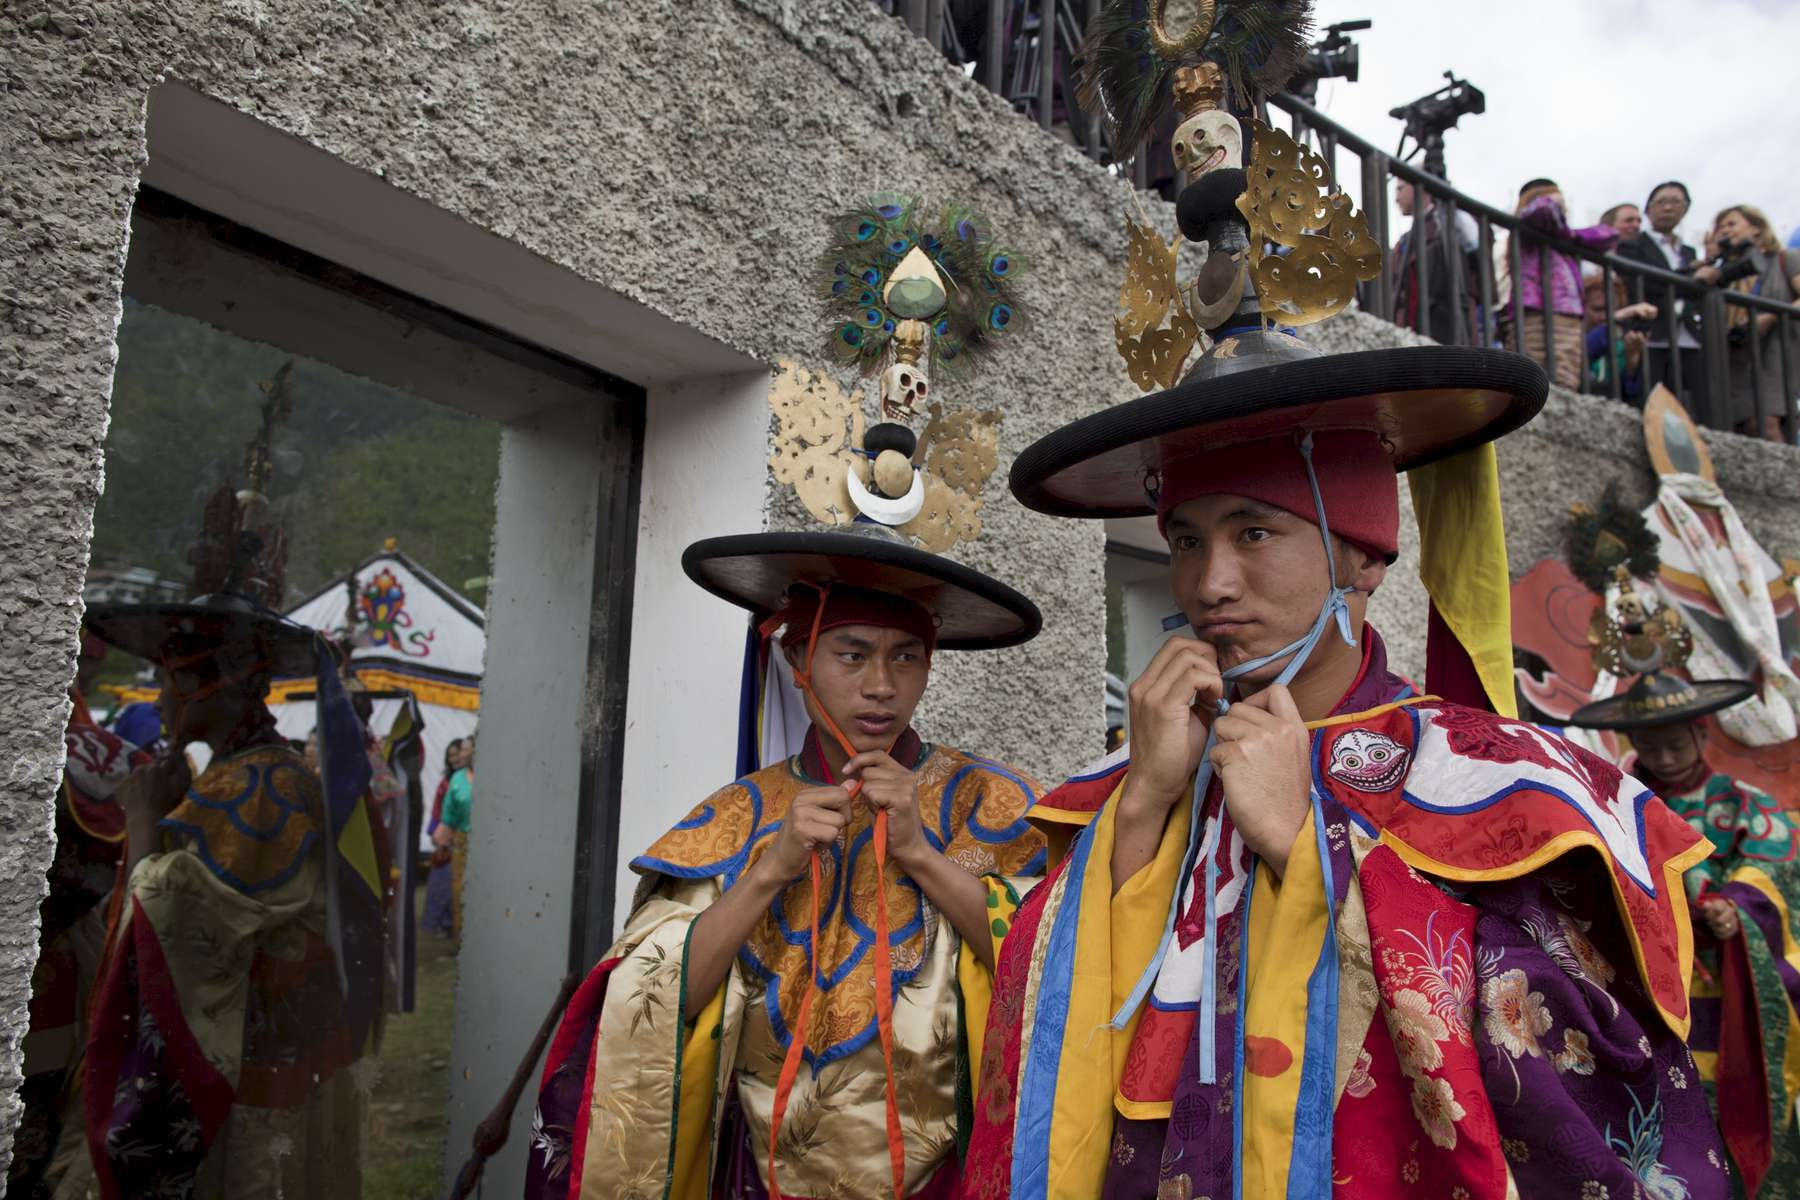 THIMPHU, BHUTAN - OCTOBER 15: Bhutanese monks prepare for the Black Hat dance for the the Royal couple, King Jigme Khesar Namgyel Wangchuck, Queen of Bhutan Ashi Jetsun Pema Wangchuck as part of the royal wedding celebrations at ChangLeme Thang October 15, 2011 in Thimphu, Bhutan. In this final day of wedding celebrations for the royal couple more than 50,000 people turned up at the stadium to see dancing and singing.  (Photo by Paula Bronstein /Getty Images)